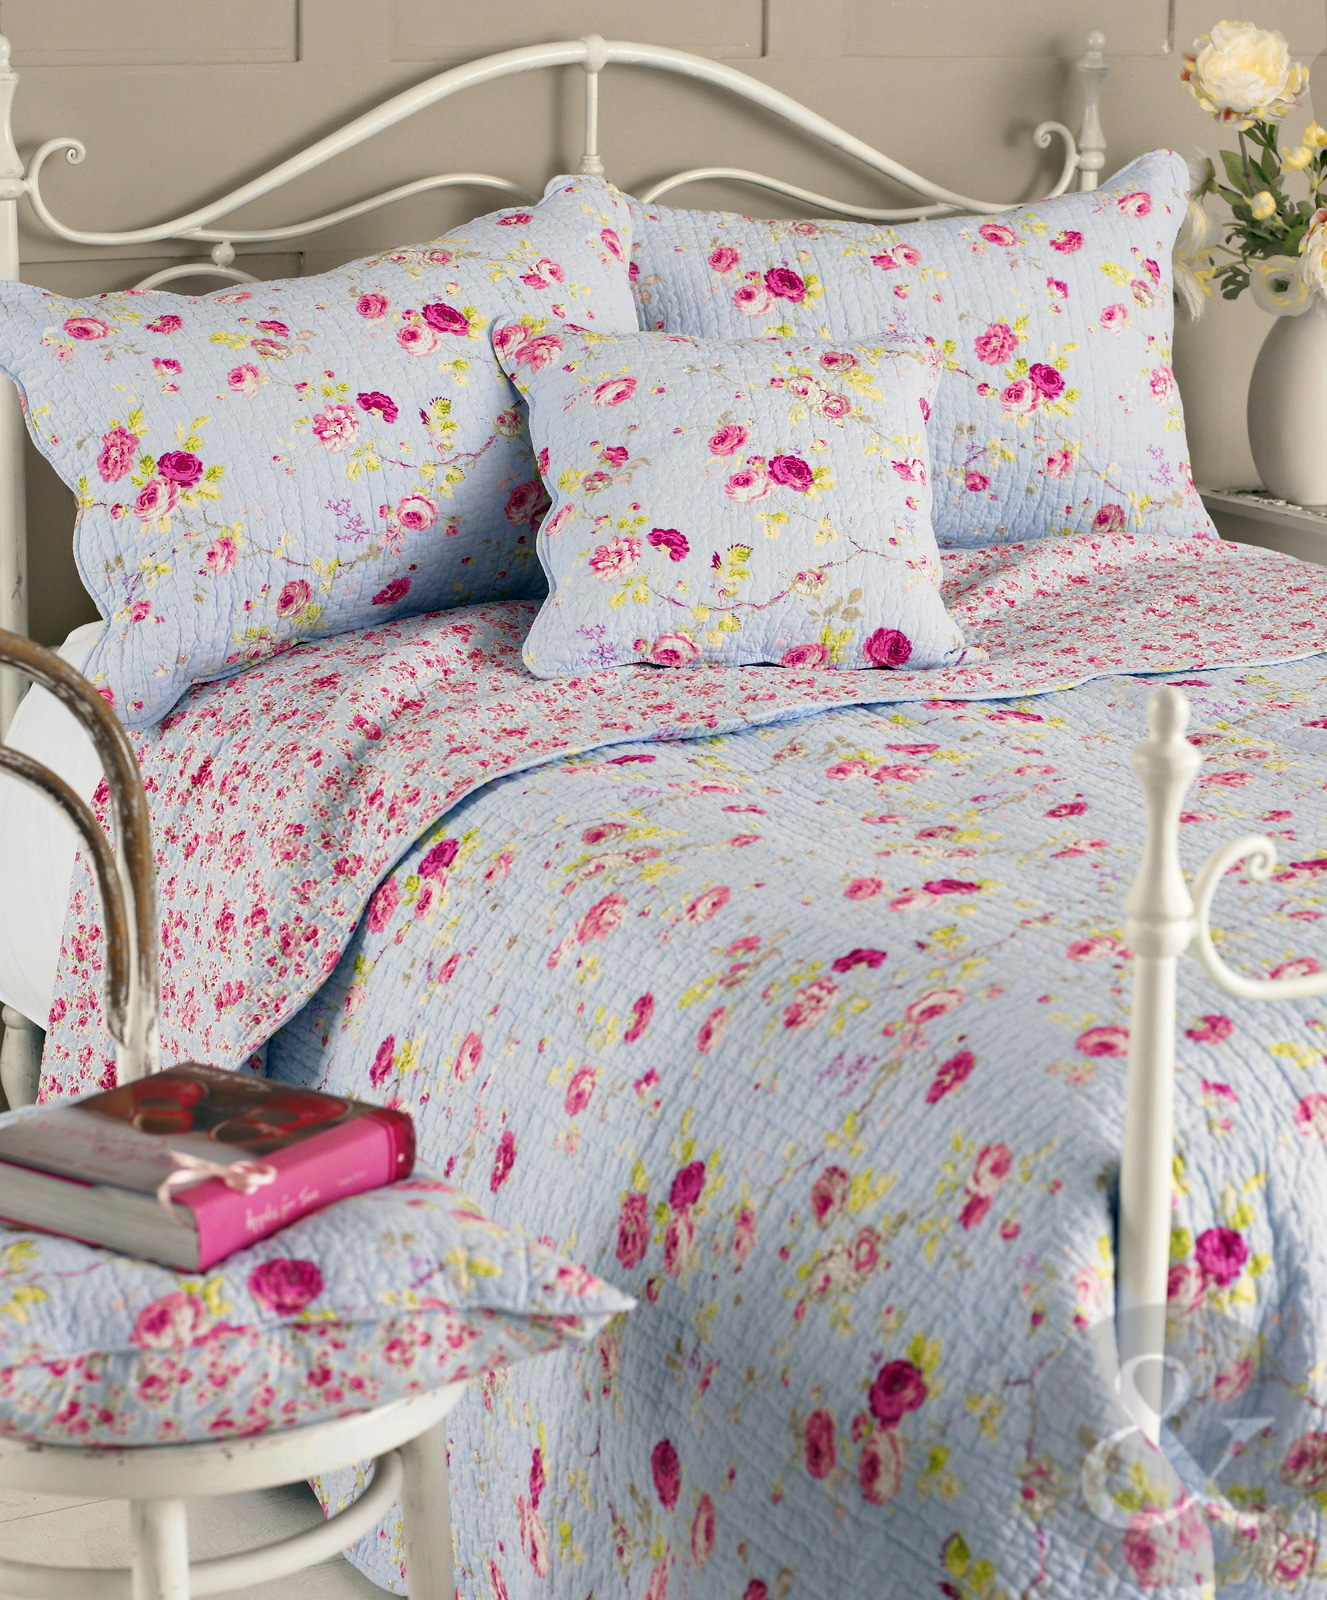 floral vintage cotton bedspread luxury shabby chic quilted reversible bed throw ebay. Black Bedroom Furniture Sets. Home Design Ideas